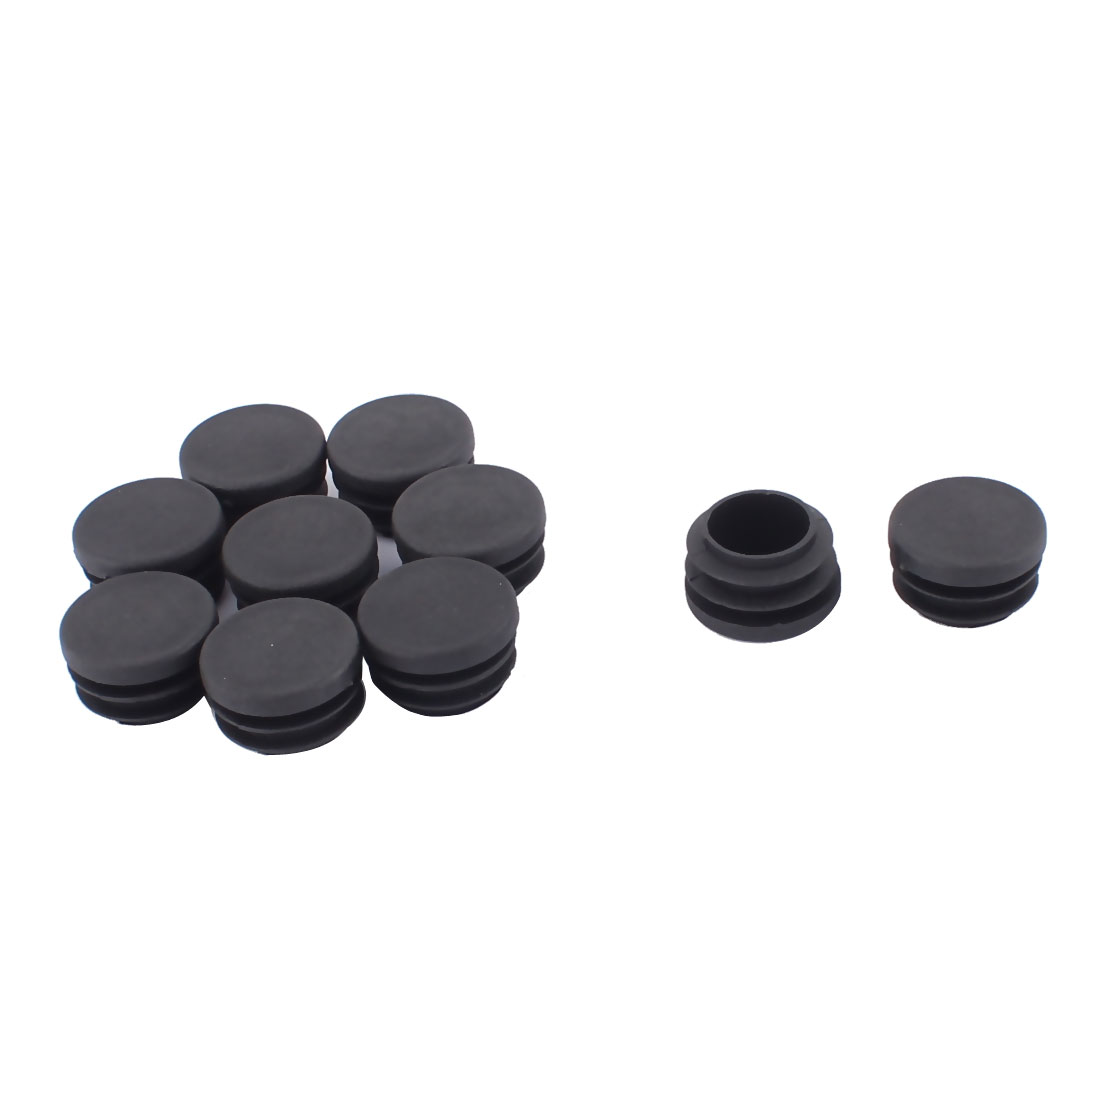 Table Chair Legs Plastic Flat Base Round Tube Insert Cover Black 28mm Dia 10pcs